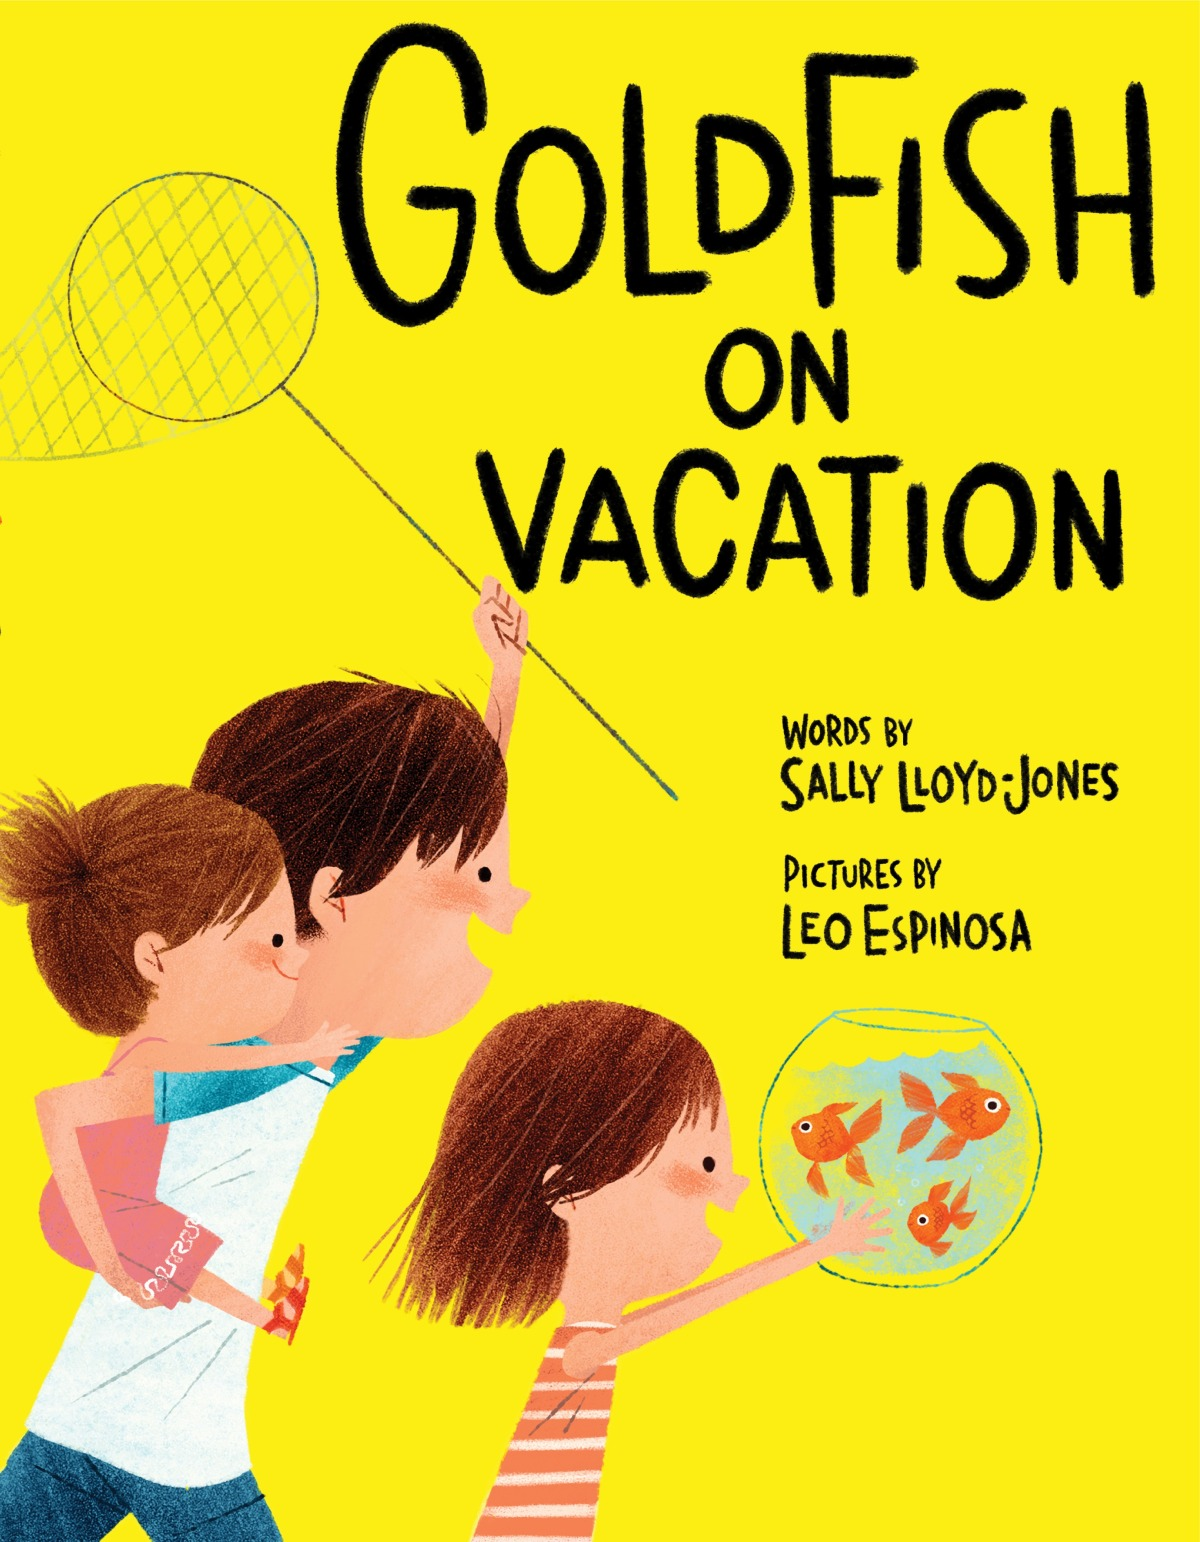 Goldfish-on-Vacation-cover